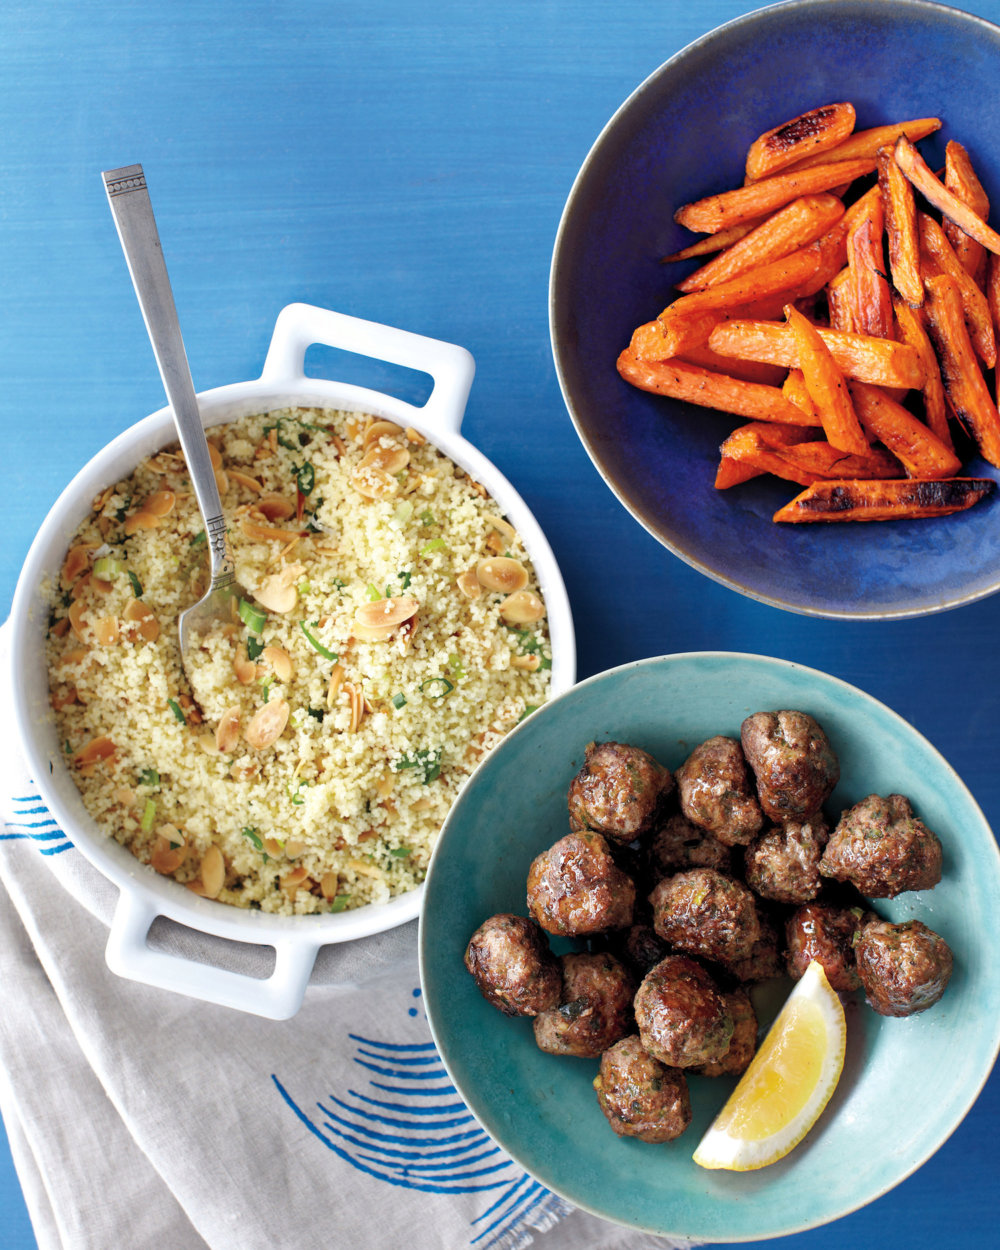 Moroccan Meatballs with Couscous and Roasted Carrots